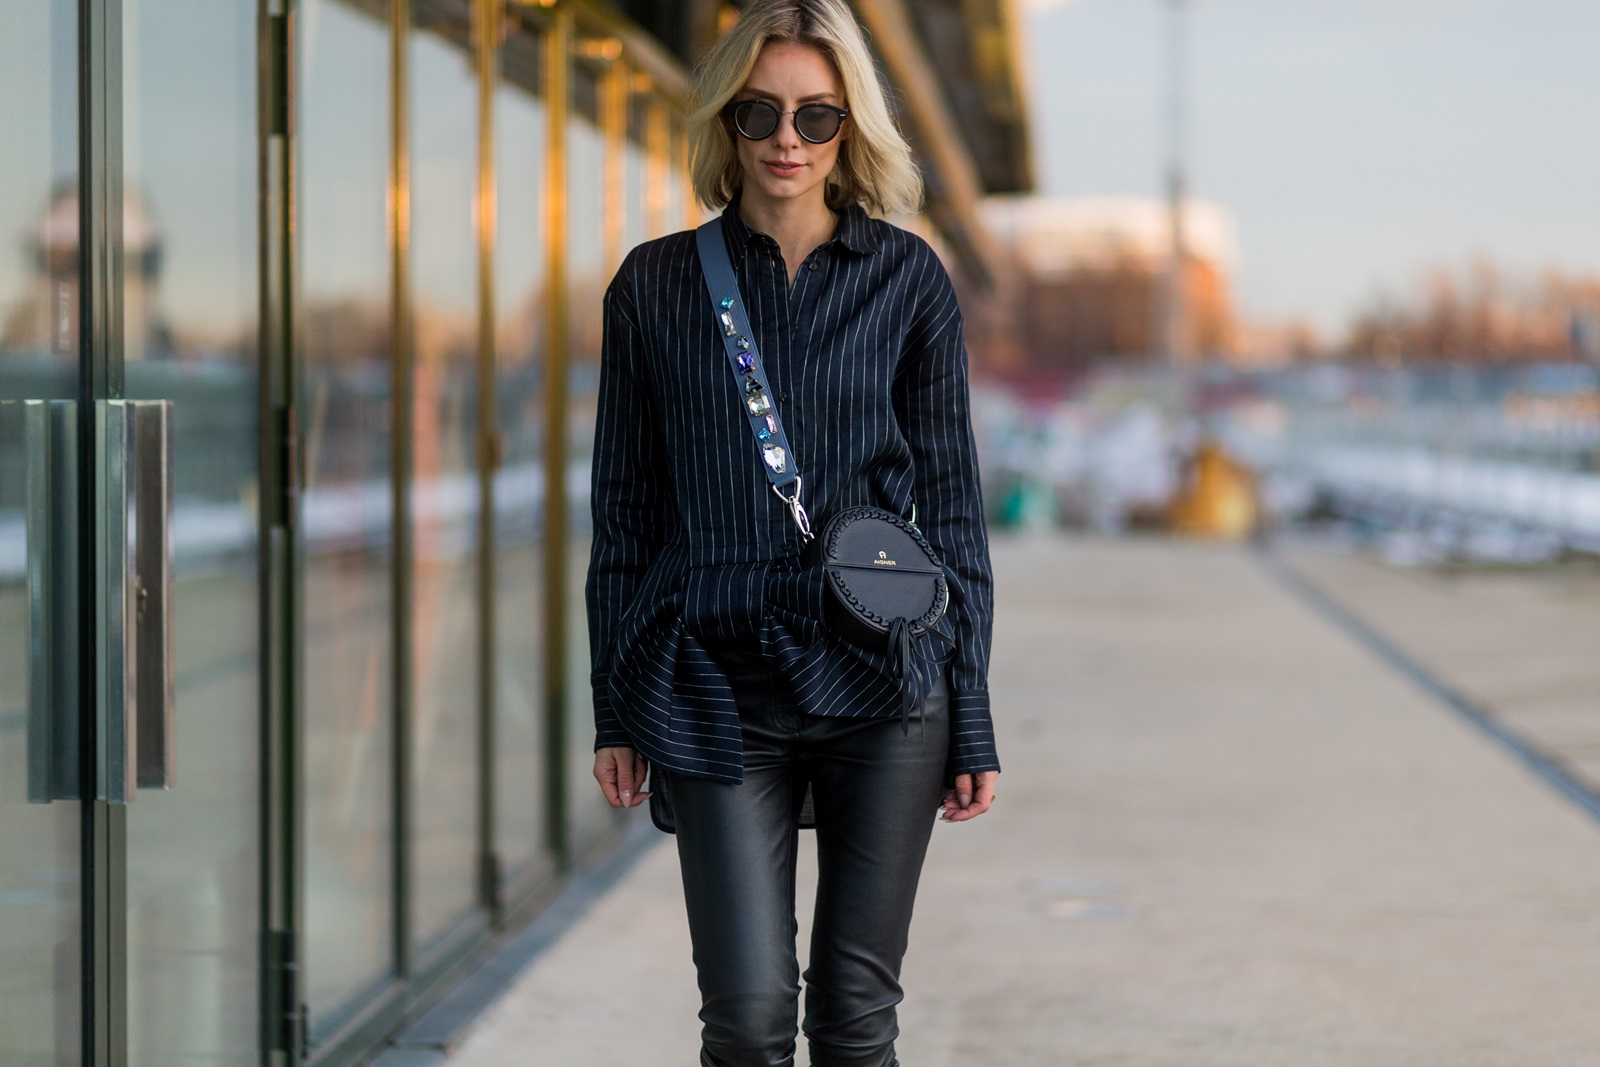 BERLIN, GERMANY - JANUARY 17: Lisa Hahnbueck wearing Victoria Beckham striped blouse with oversized ow tie, Bonvirage leather pants, Aigner bag, Aeyde Bowie Ankle Boots patent leather, sunglasses DIOR MAGNITUDE0 during the Mercedes-Benz Fashion Week Berlin A/W 2017 on January 17, 2017 in Berlin, Germany. (Photo by Christian Vierig/Getty Images) *** Local Caption *** Lisa Hahnbueck